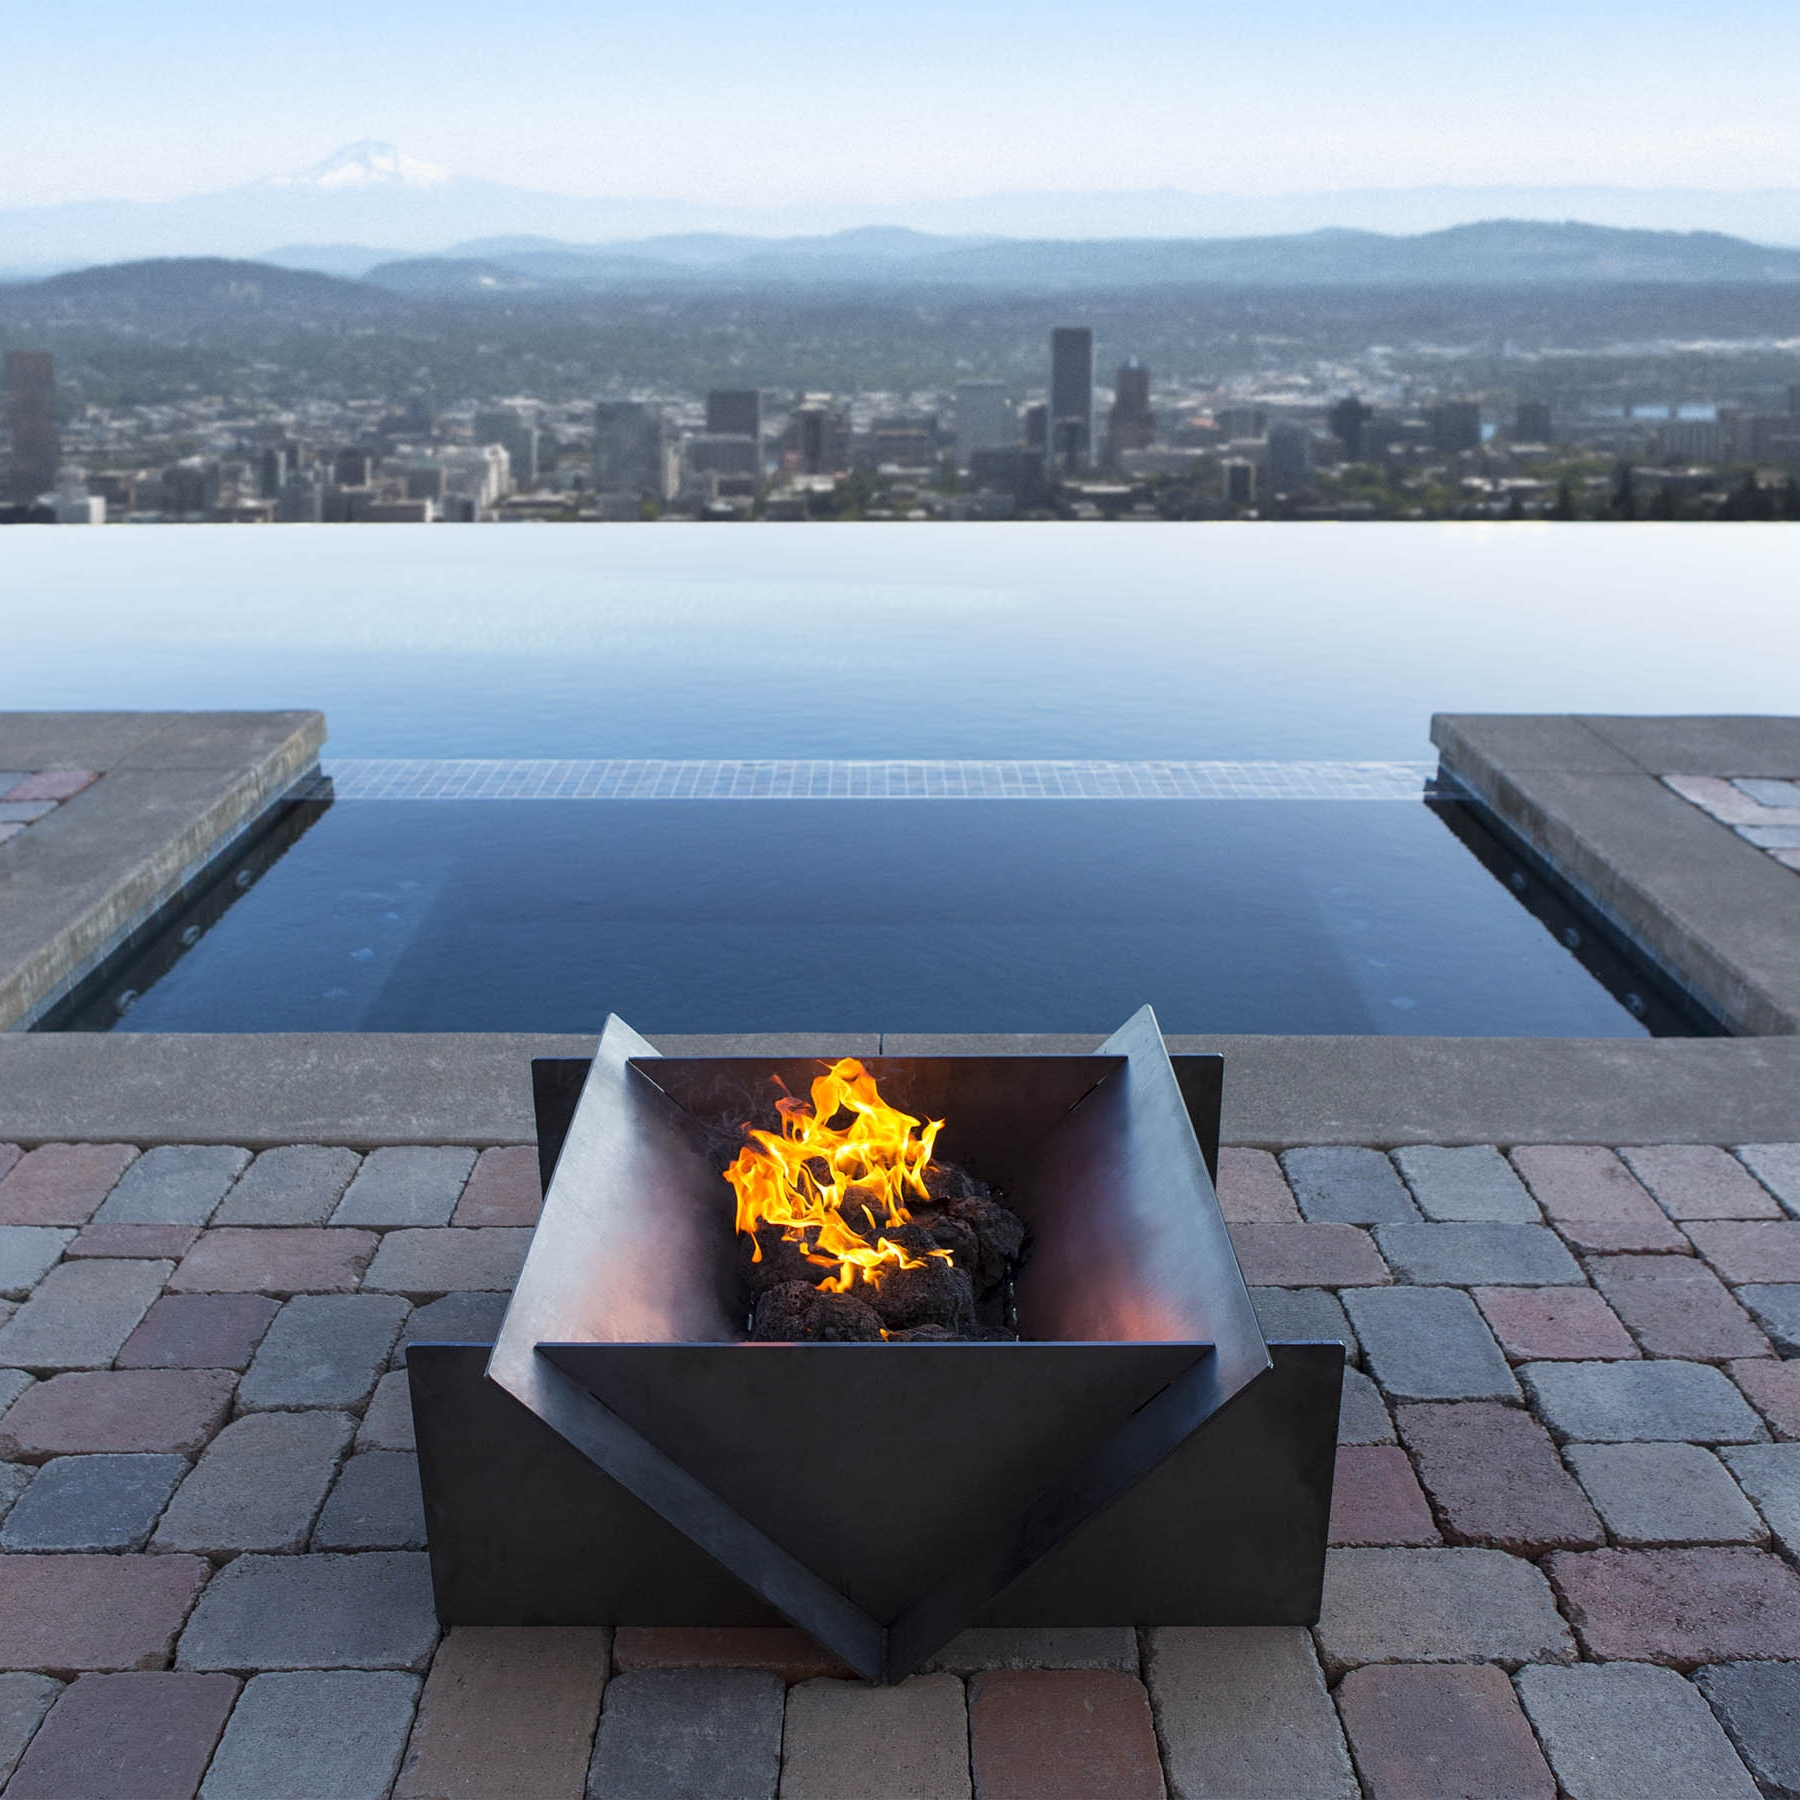 Stahl Firepit - Services: Paid Media, Research & Analytics, SEO